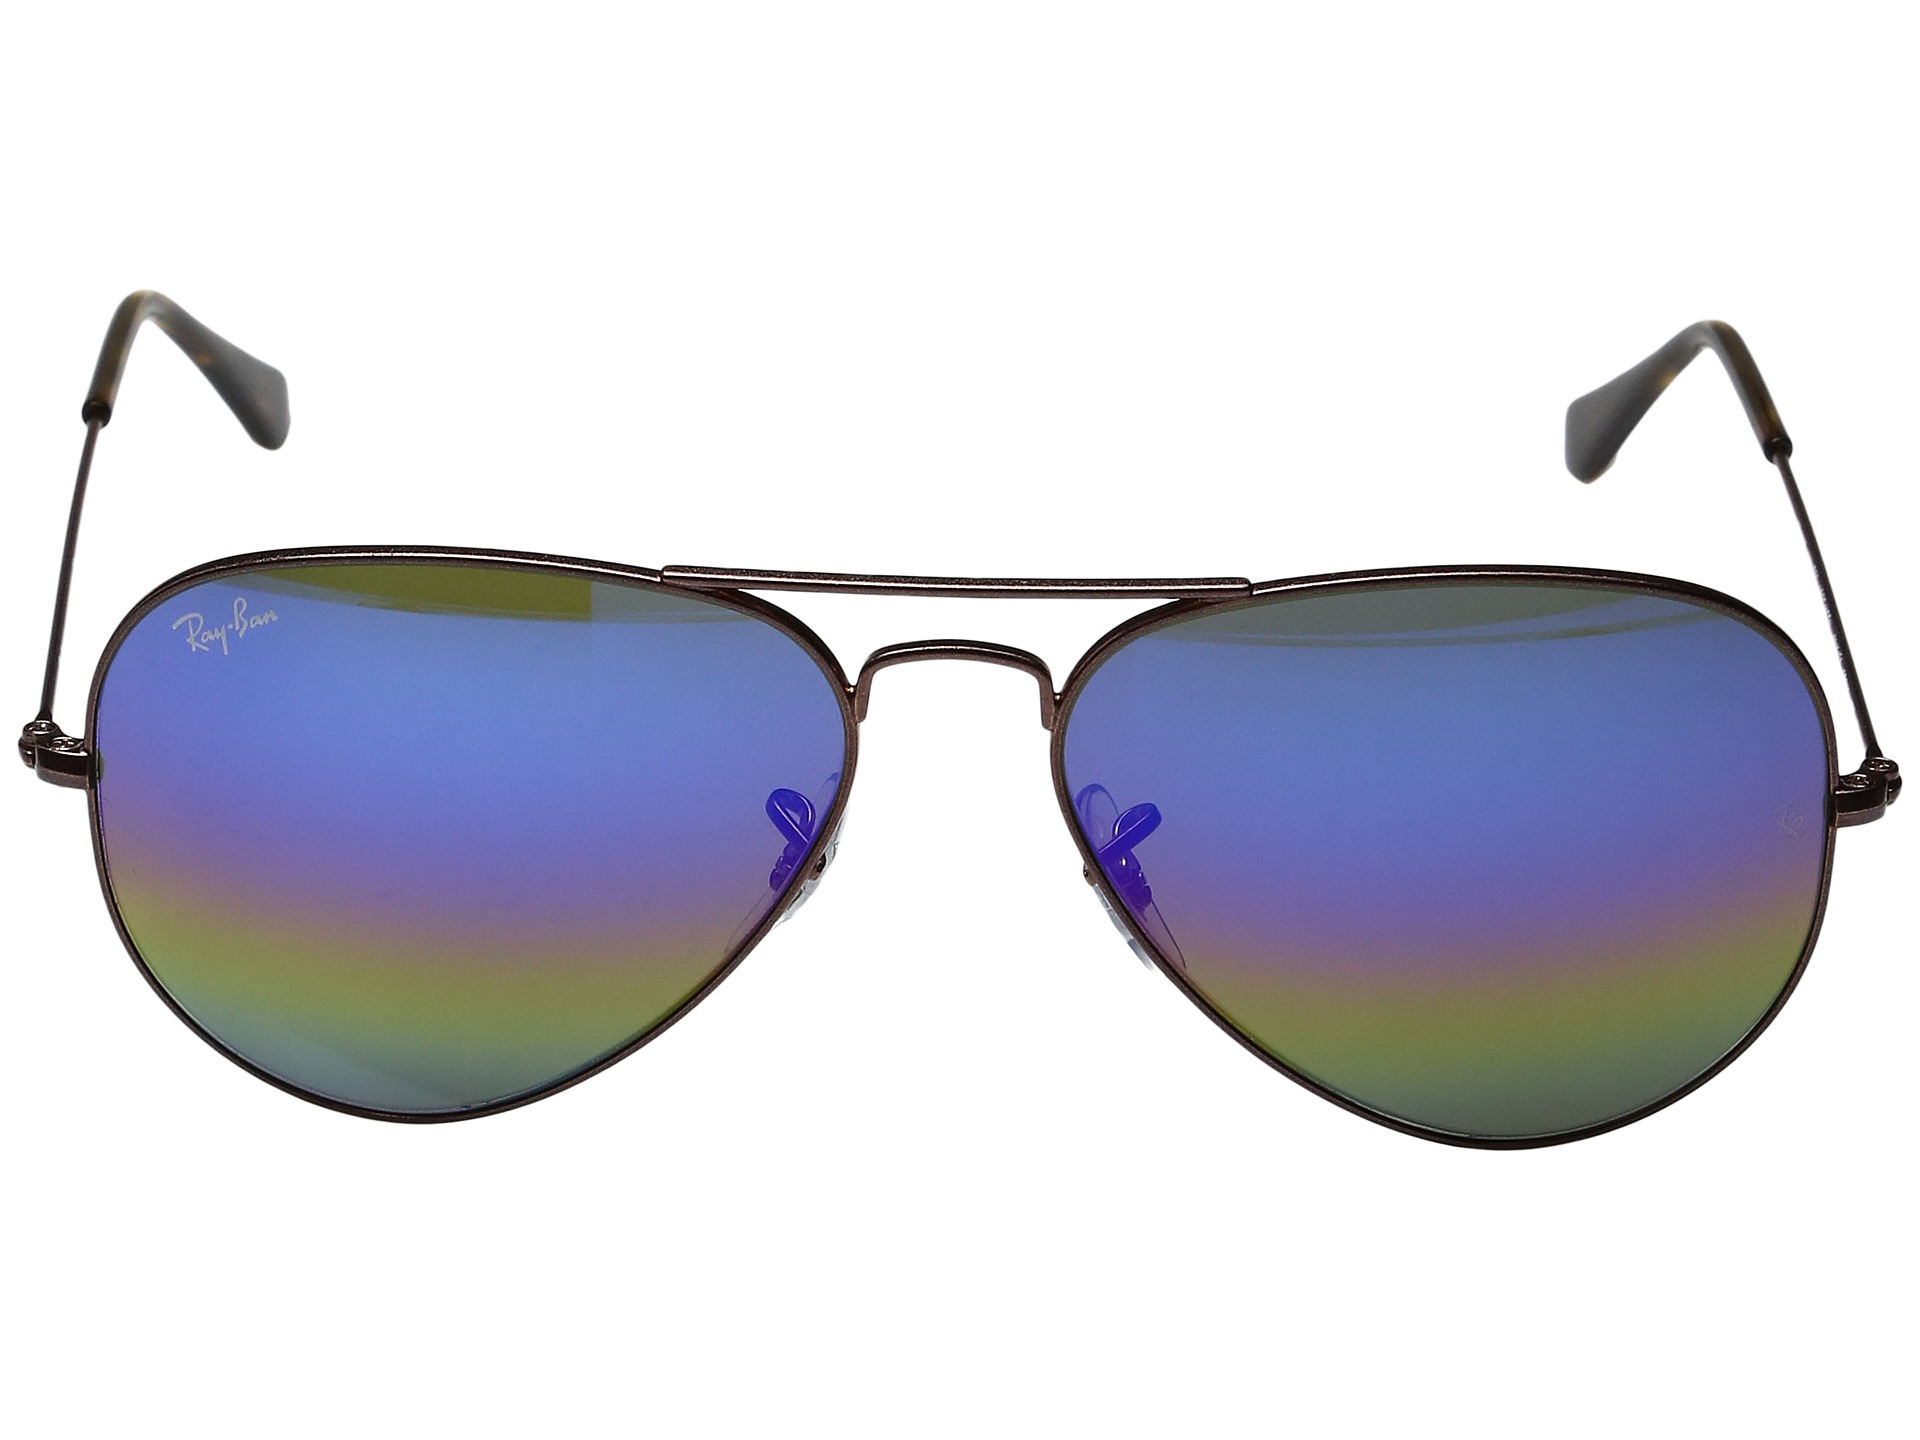 Ray Ban Aviators Zappos   City of Kenmore, Washington ae55a31058ef